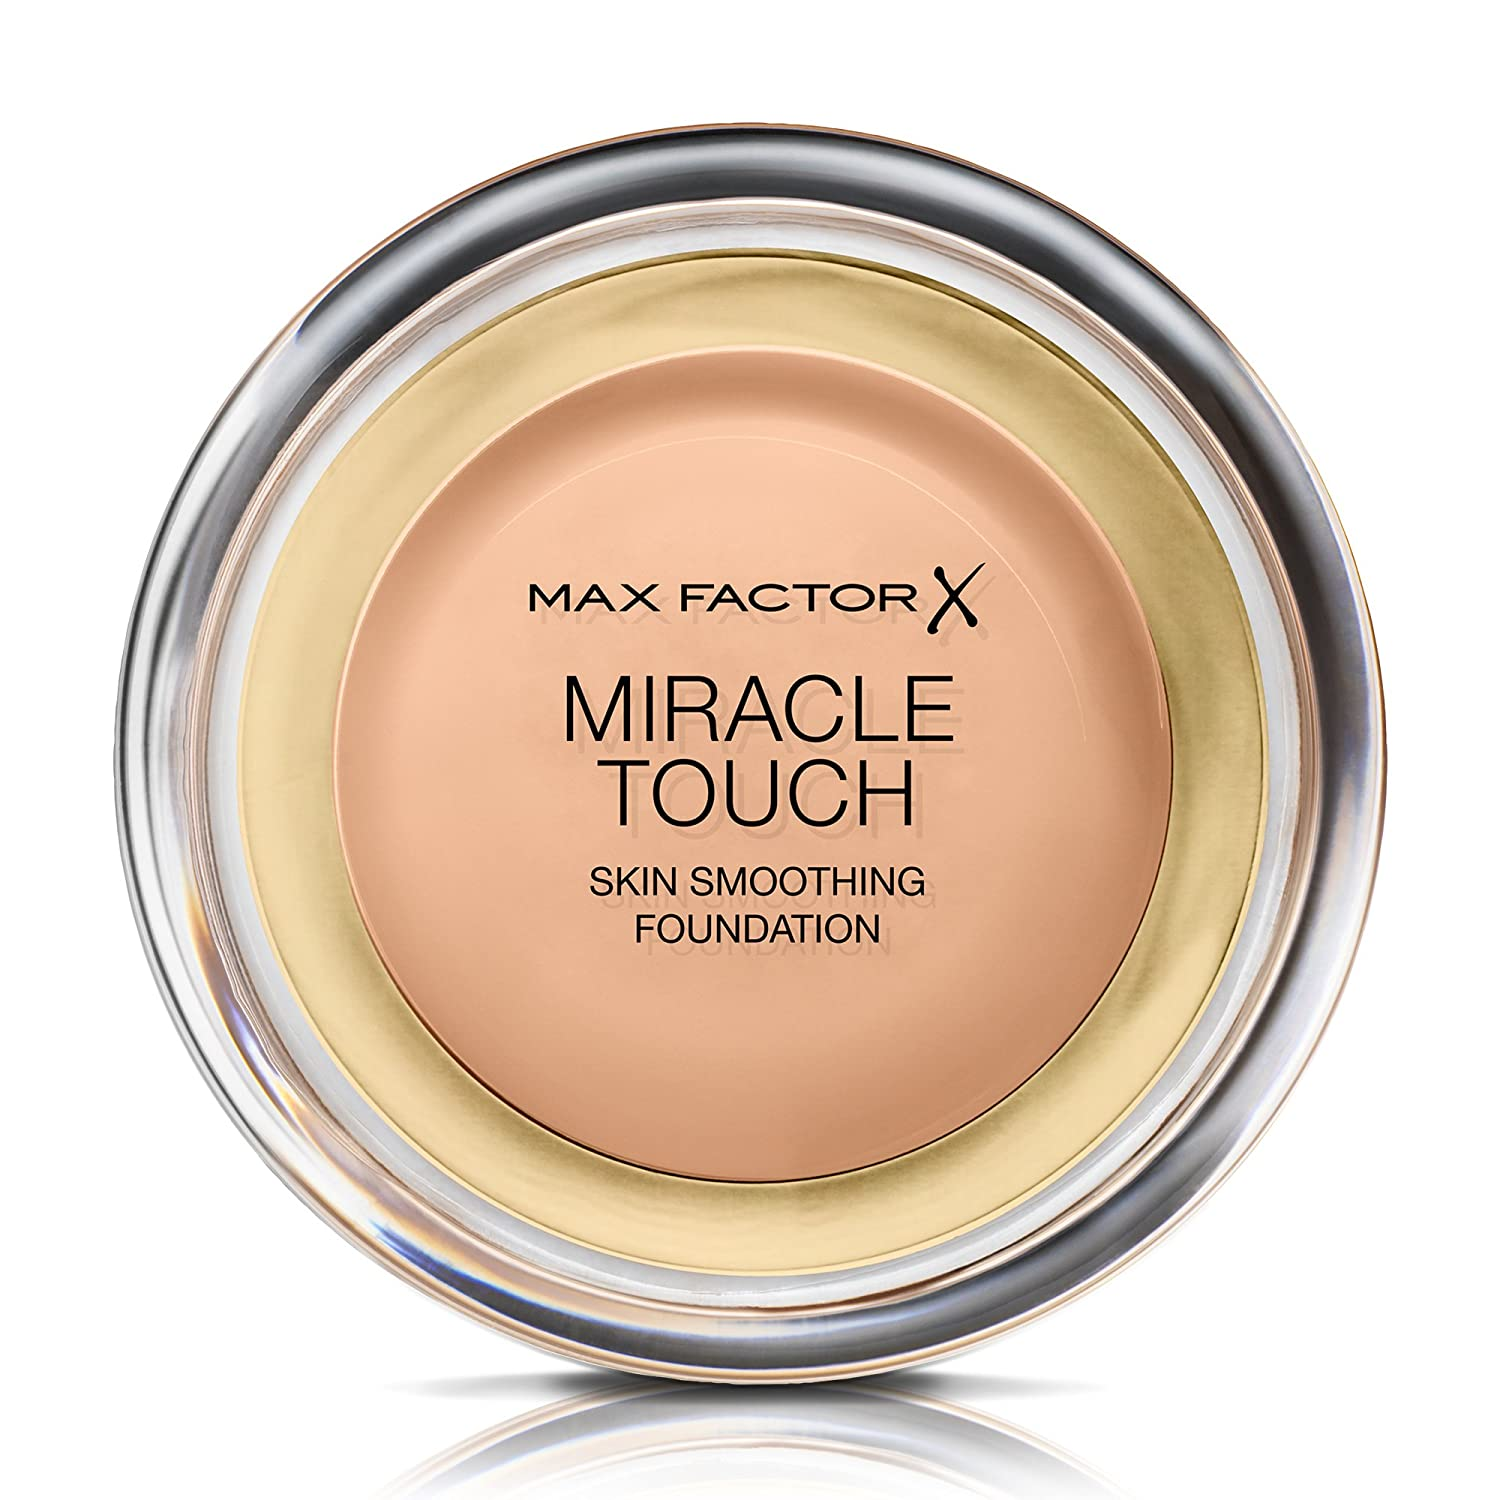 Max Factor Miracle Touch Skin Smoothing Foundation, 70 Natural Coty 81565062